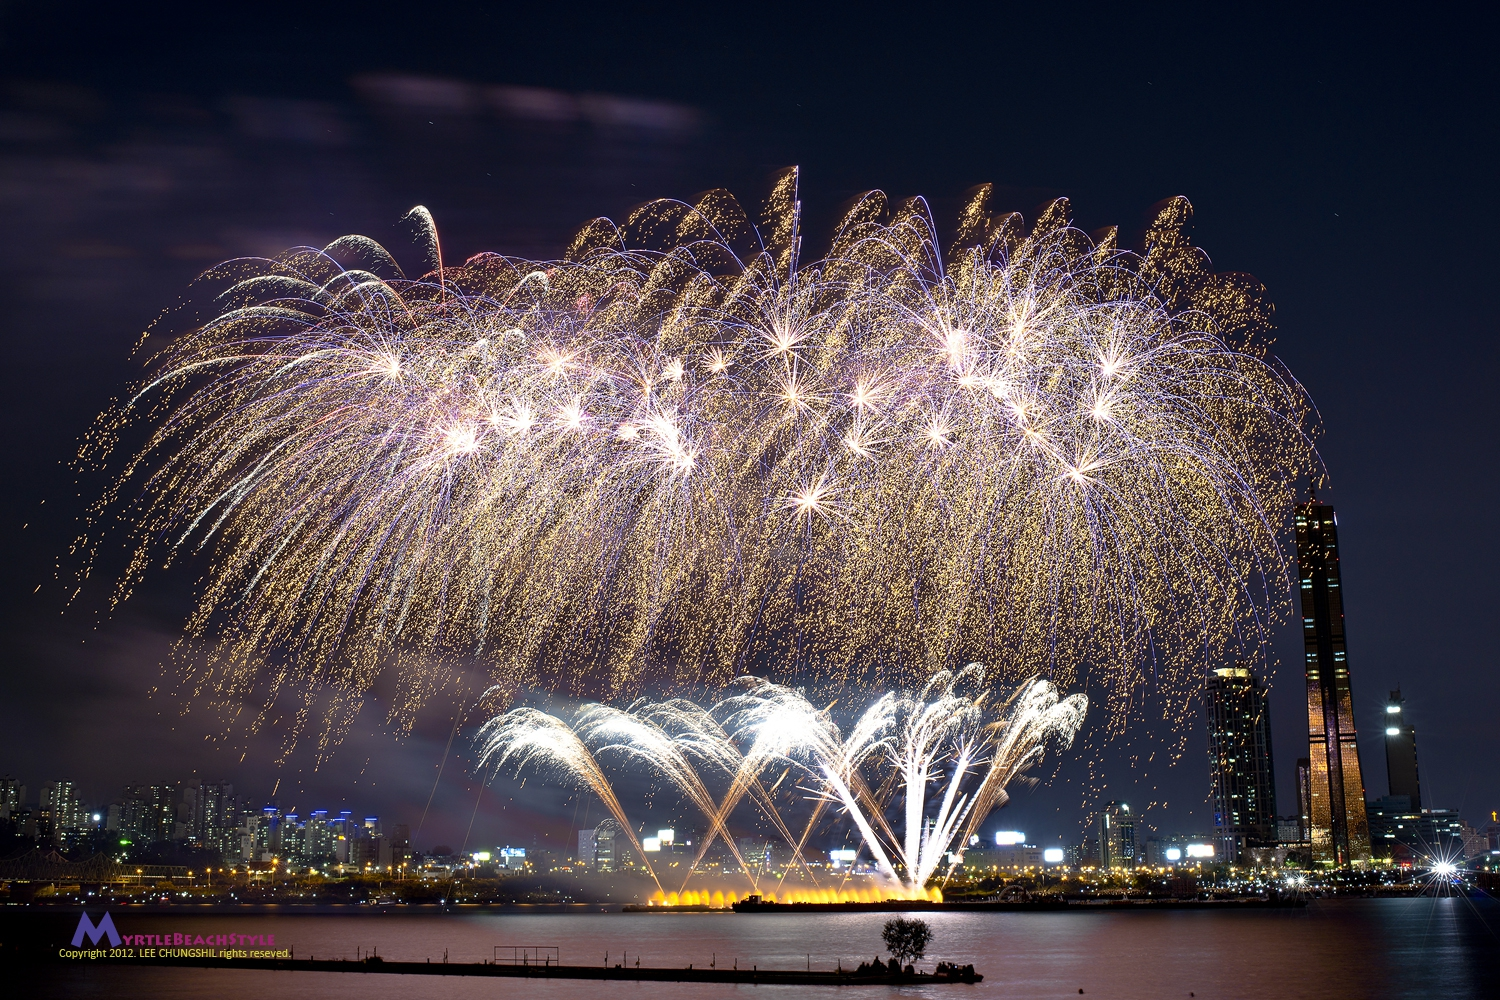 Seoul International Fireworks Festival 2016